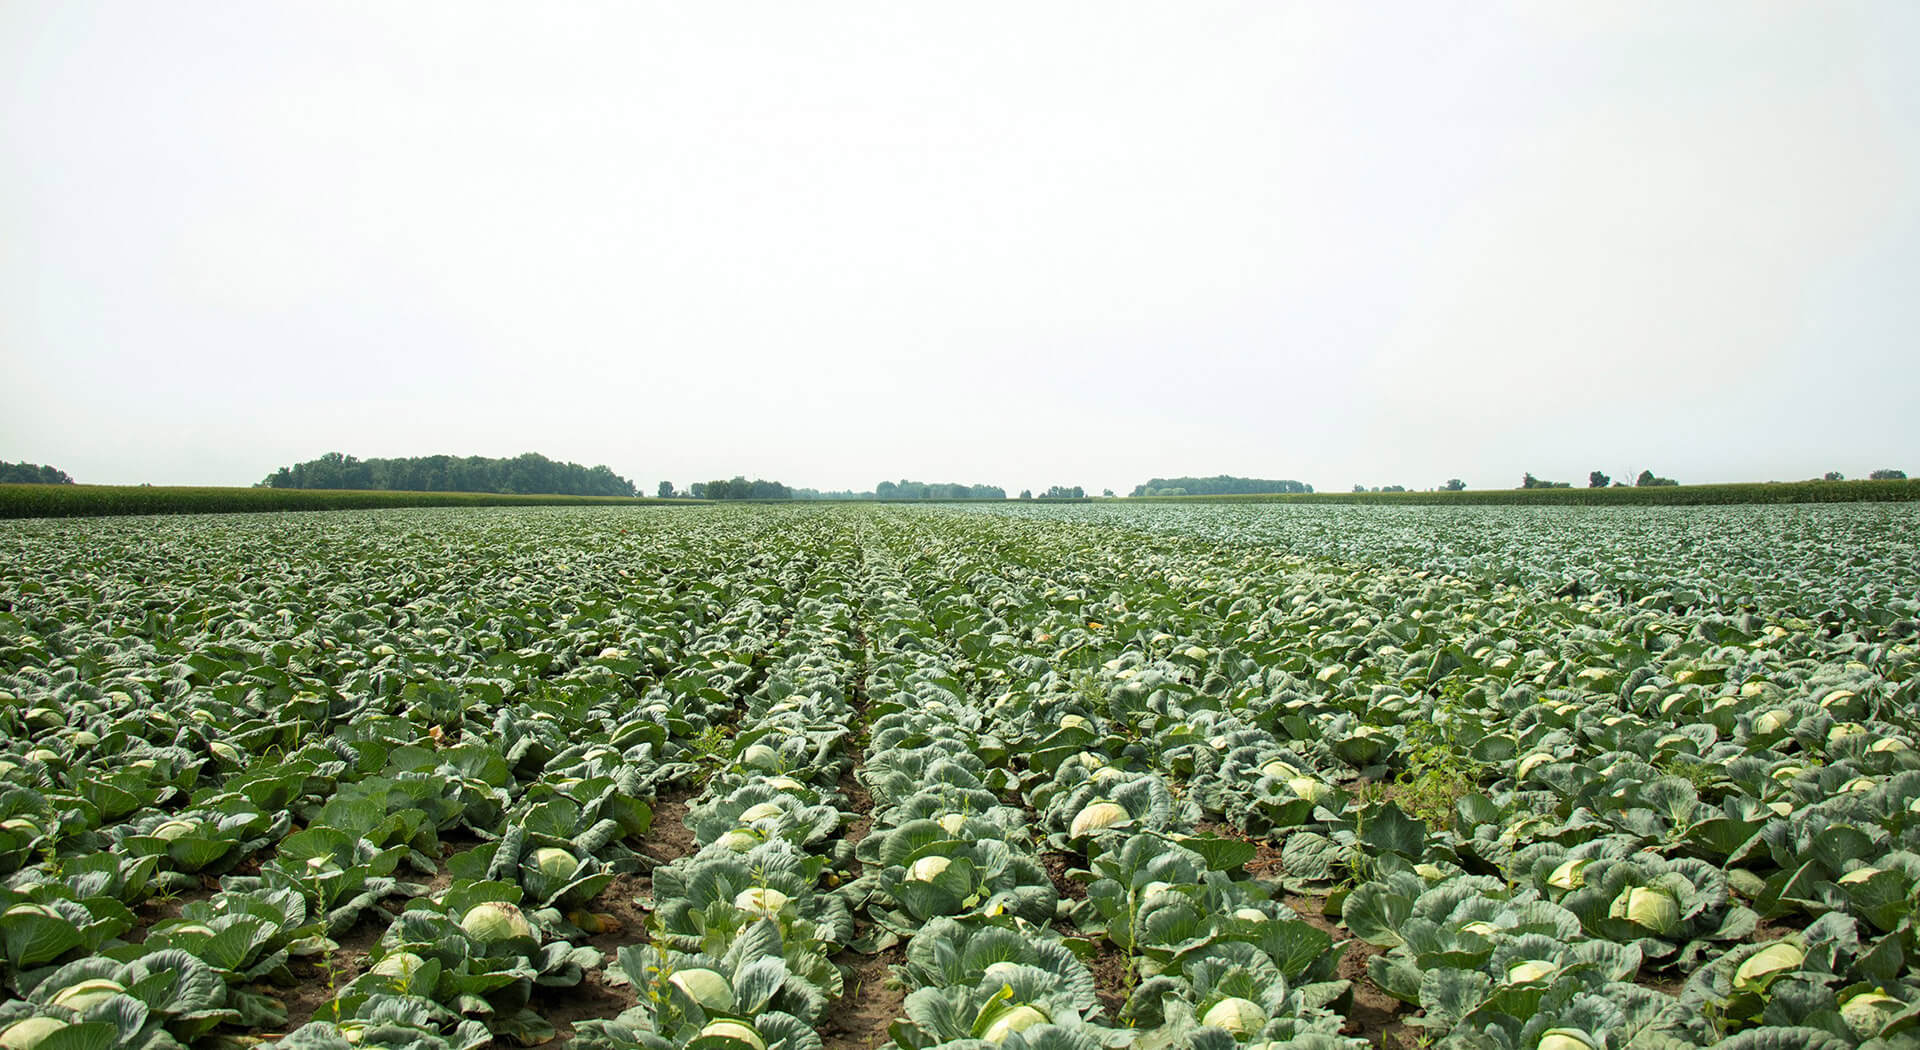 cabbage_field-slider-image